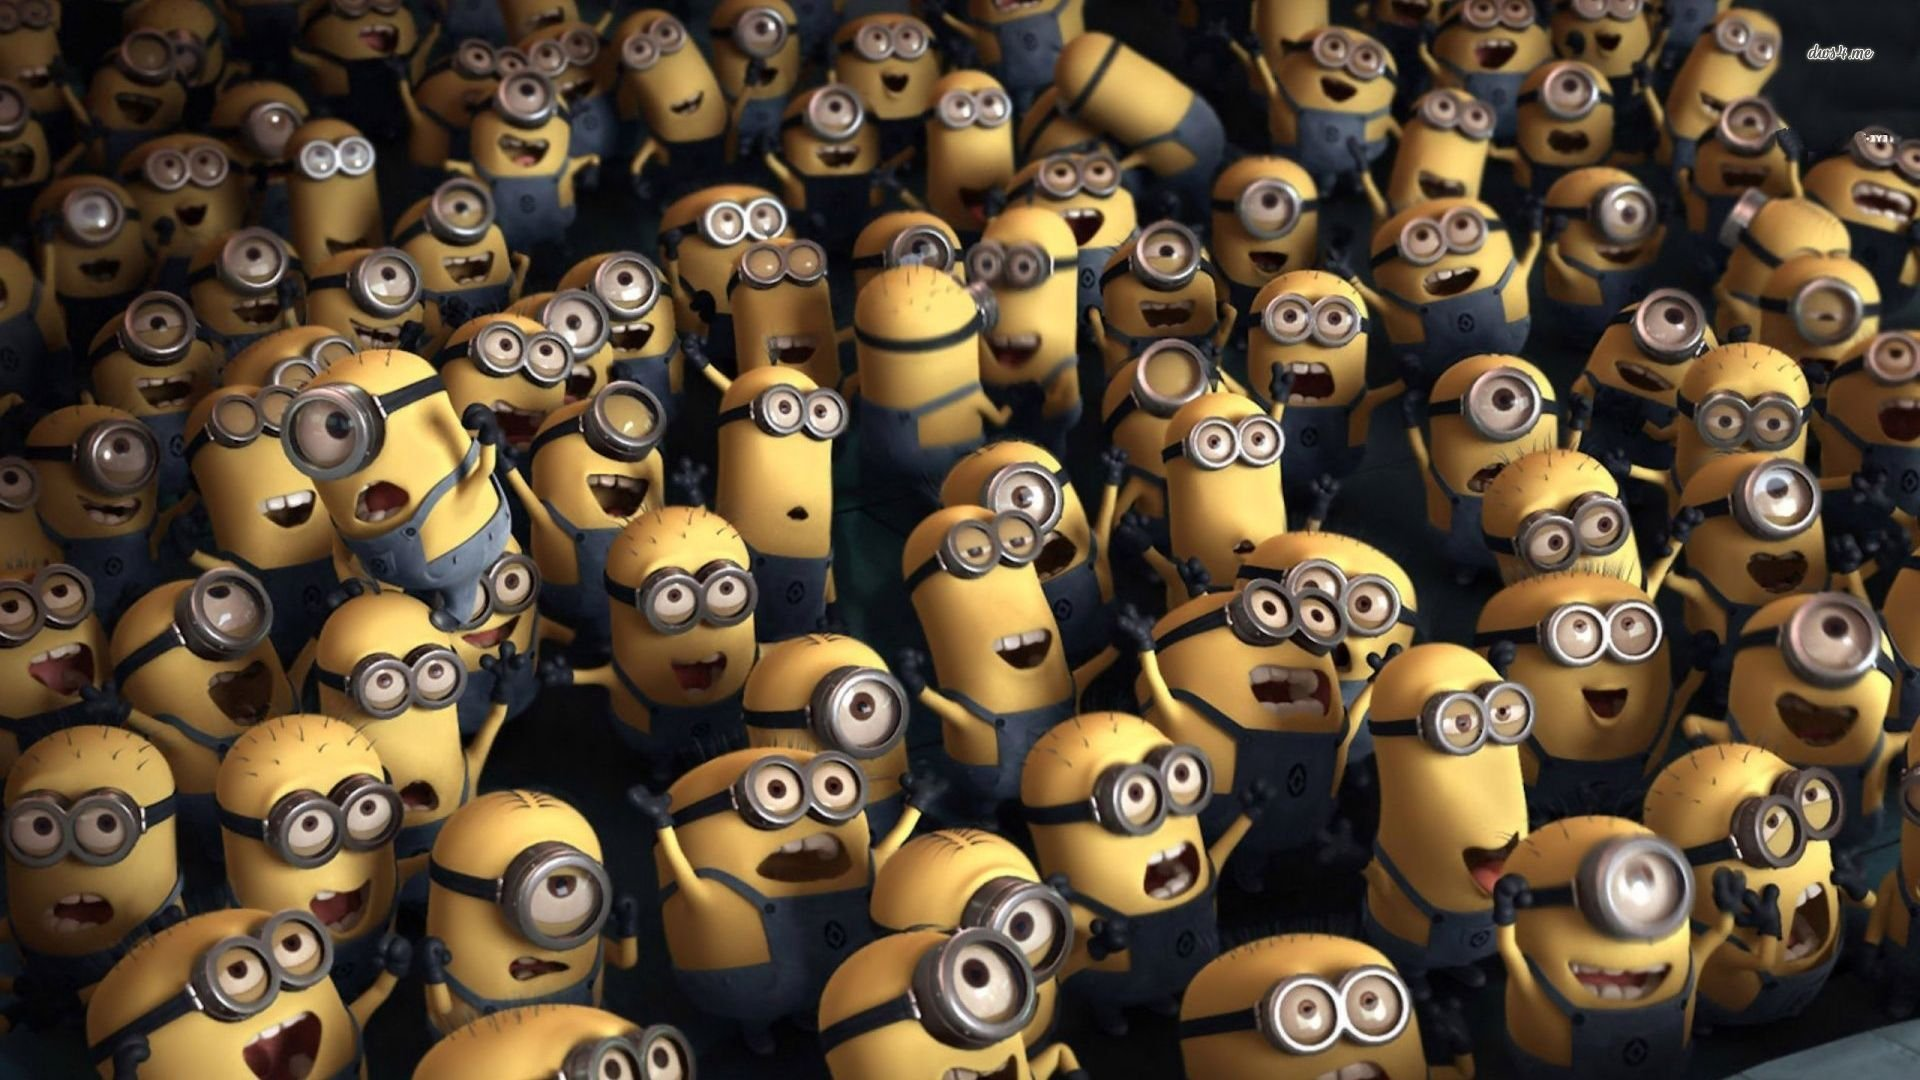 Minions-Despicable-Me-Gallery-of-Free-Download-For-1920×1080-Minions-Despicable-Me-Wall-wallpaper-wpc5807238